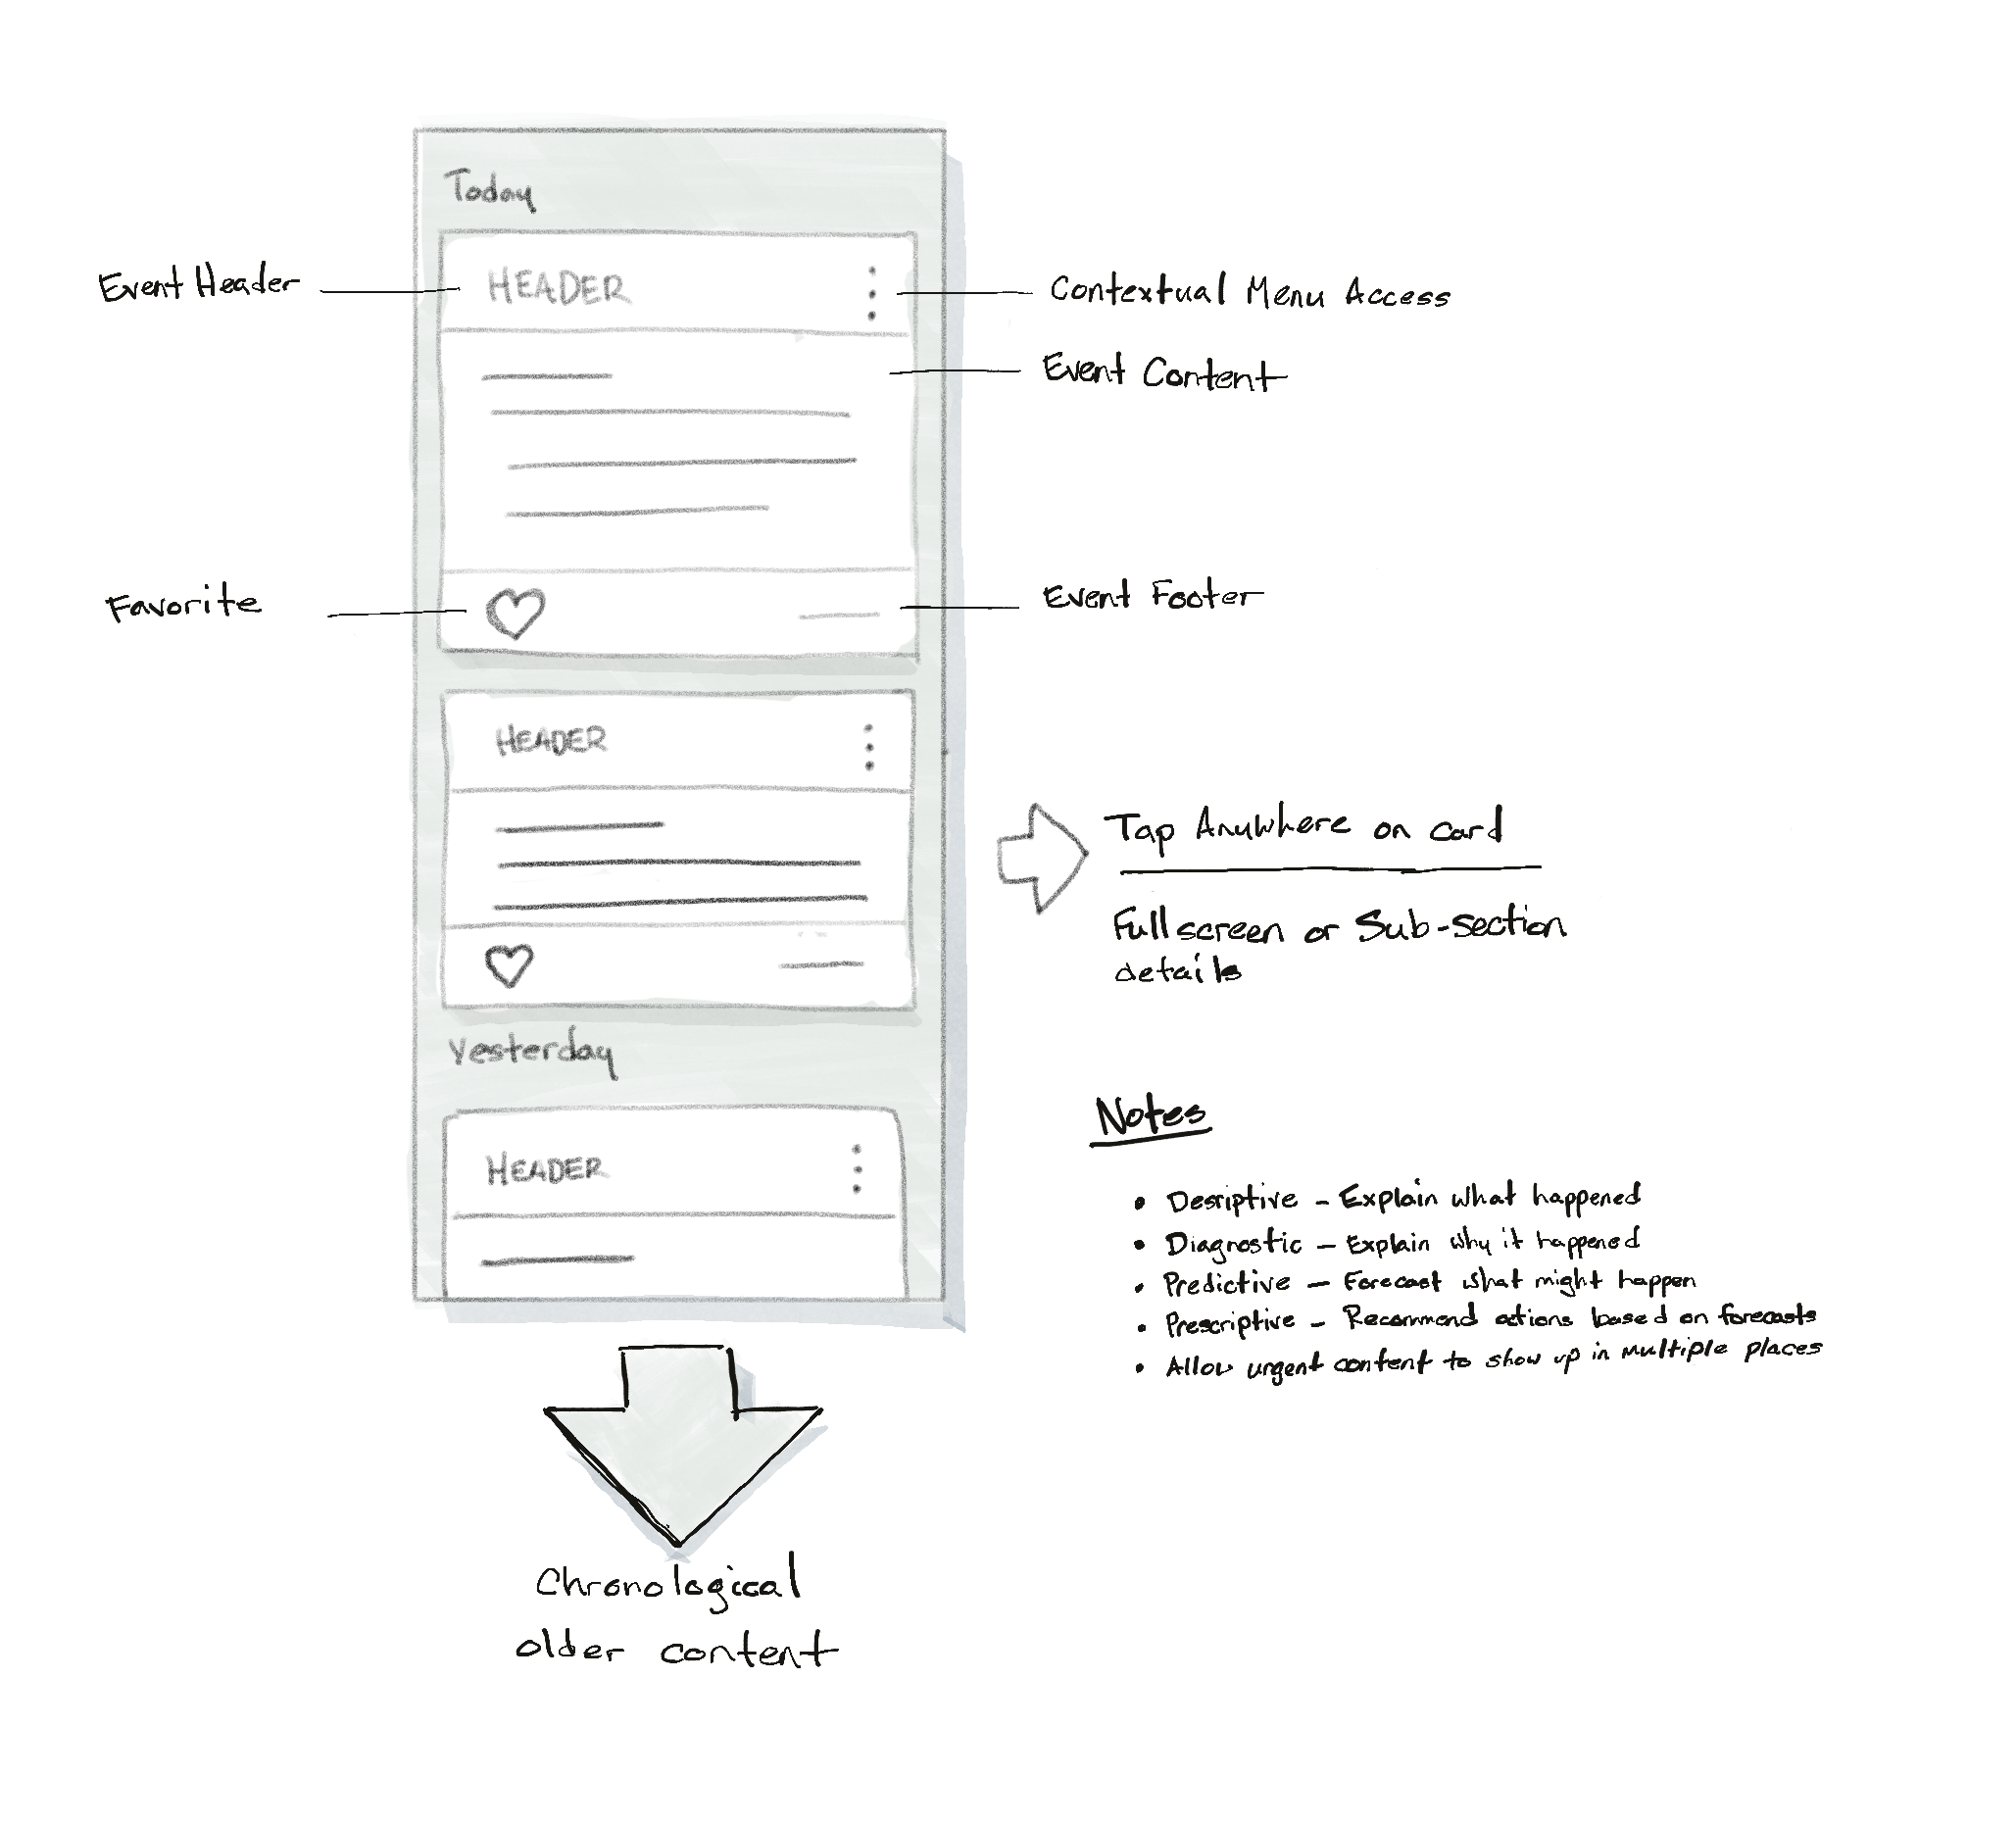 Early sketch of the activity feed.